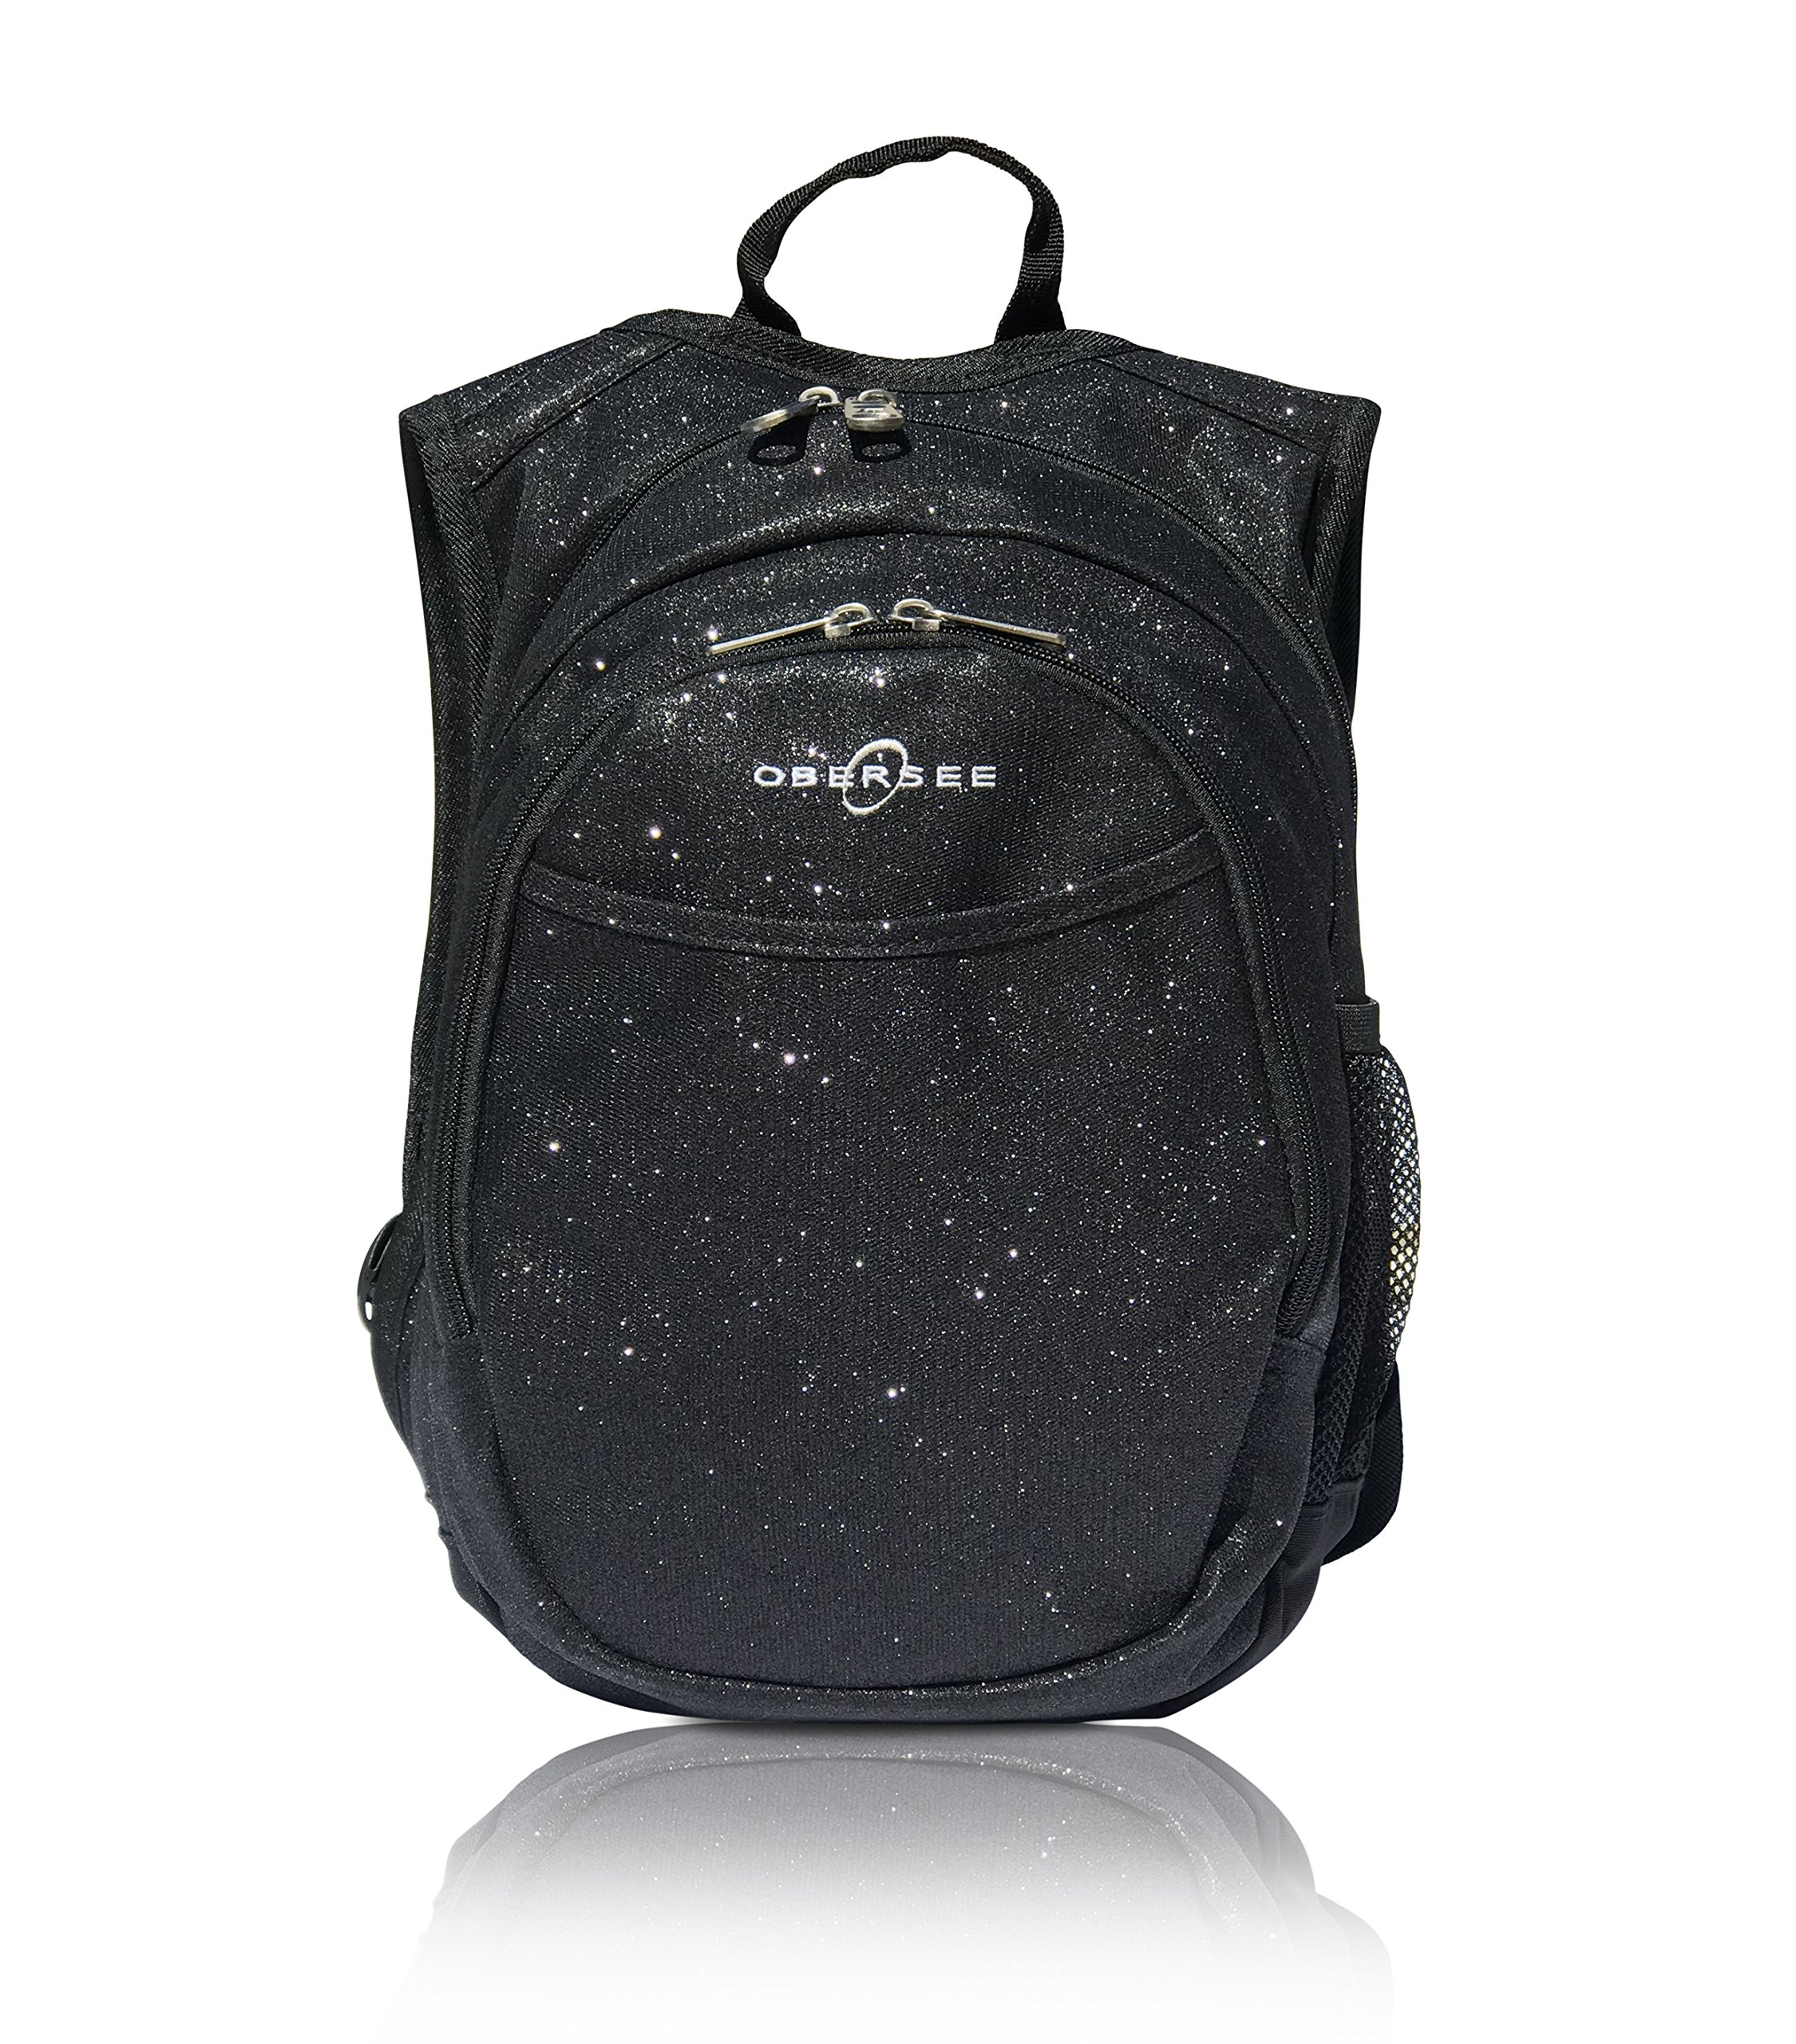 Preschool Backpack Toddlers Insulated Measures